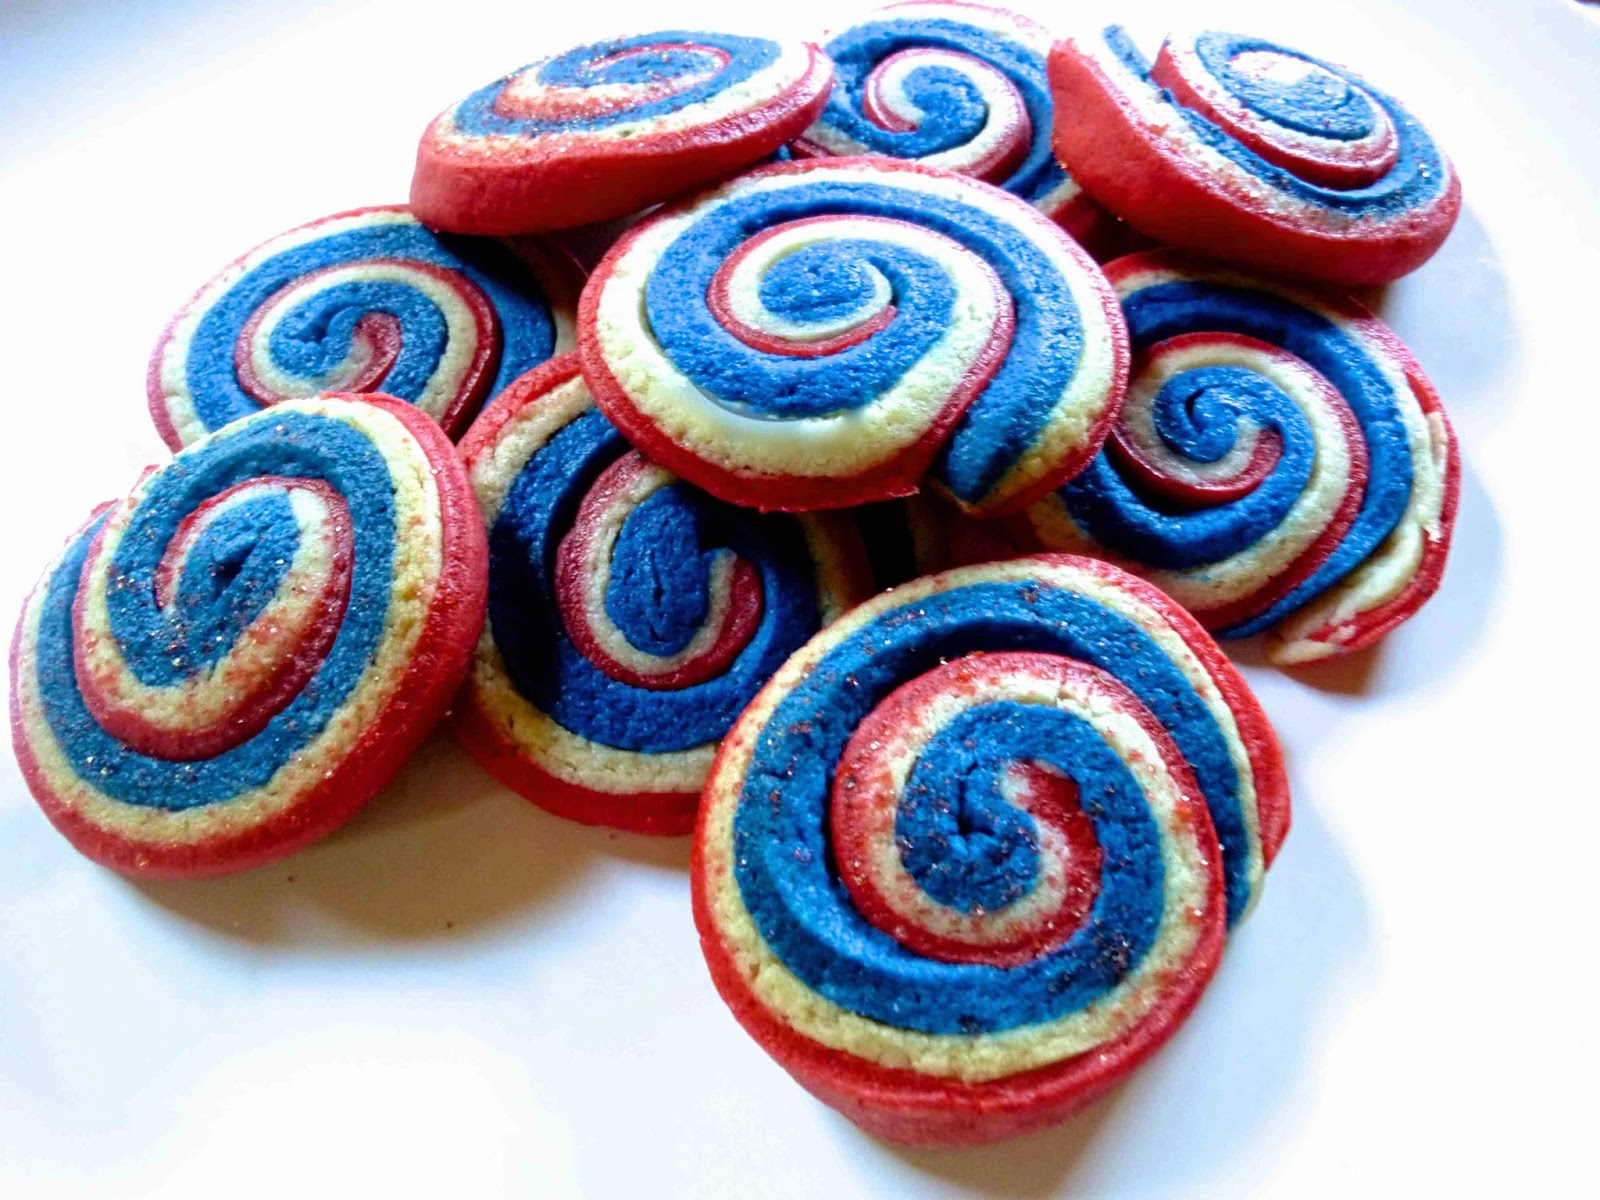 diary of a mad hausfrau: red, white and blue pinwheel cookies